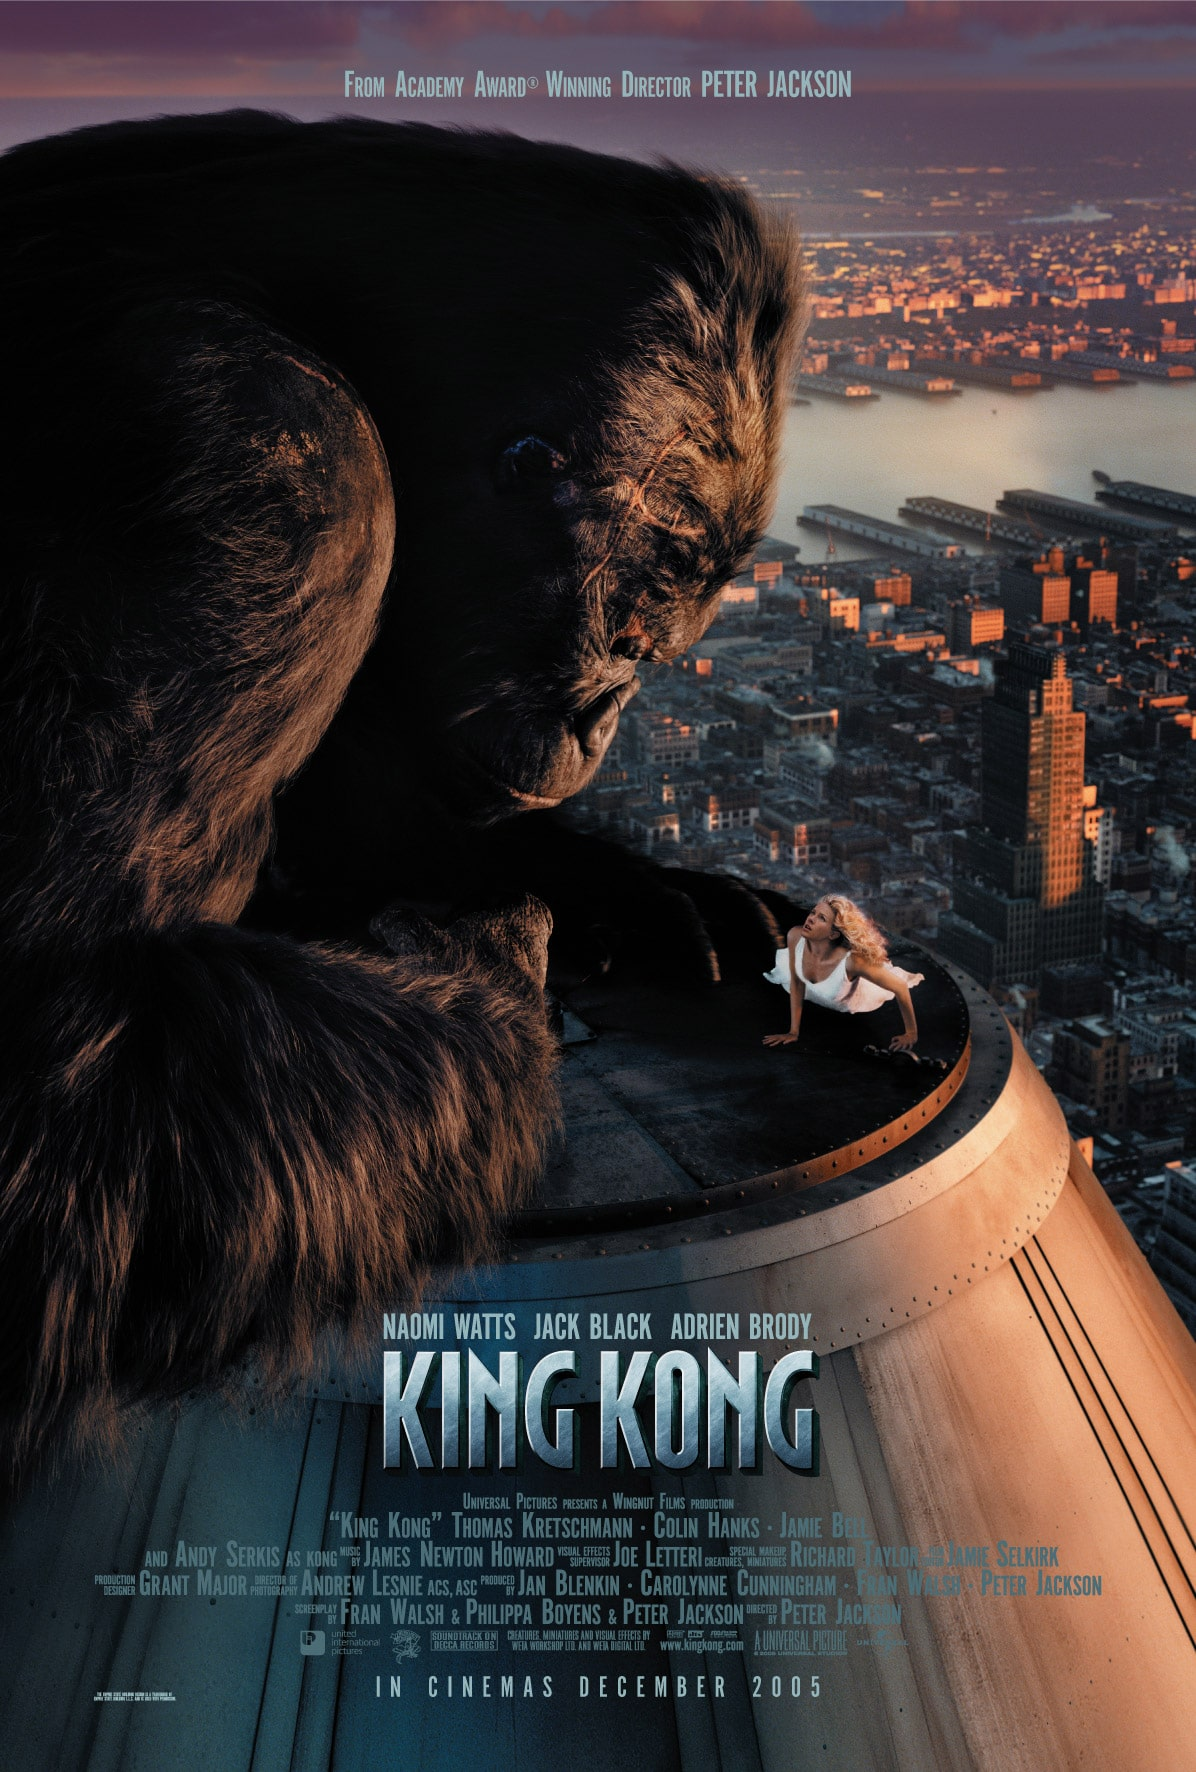 King Kong movie 2005 official poster